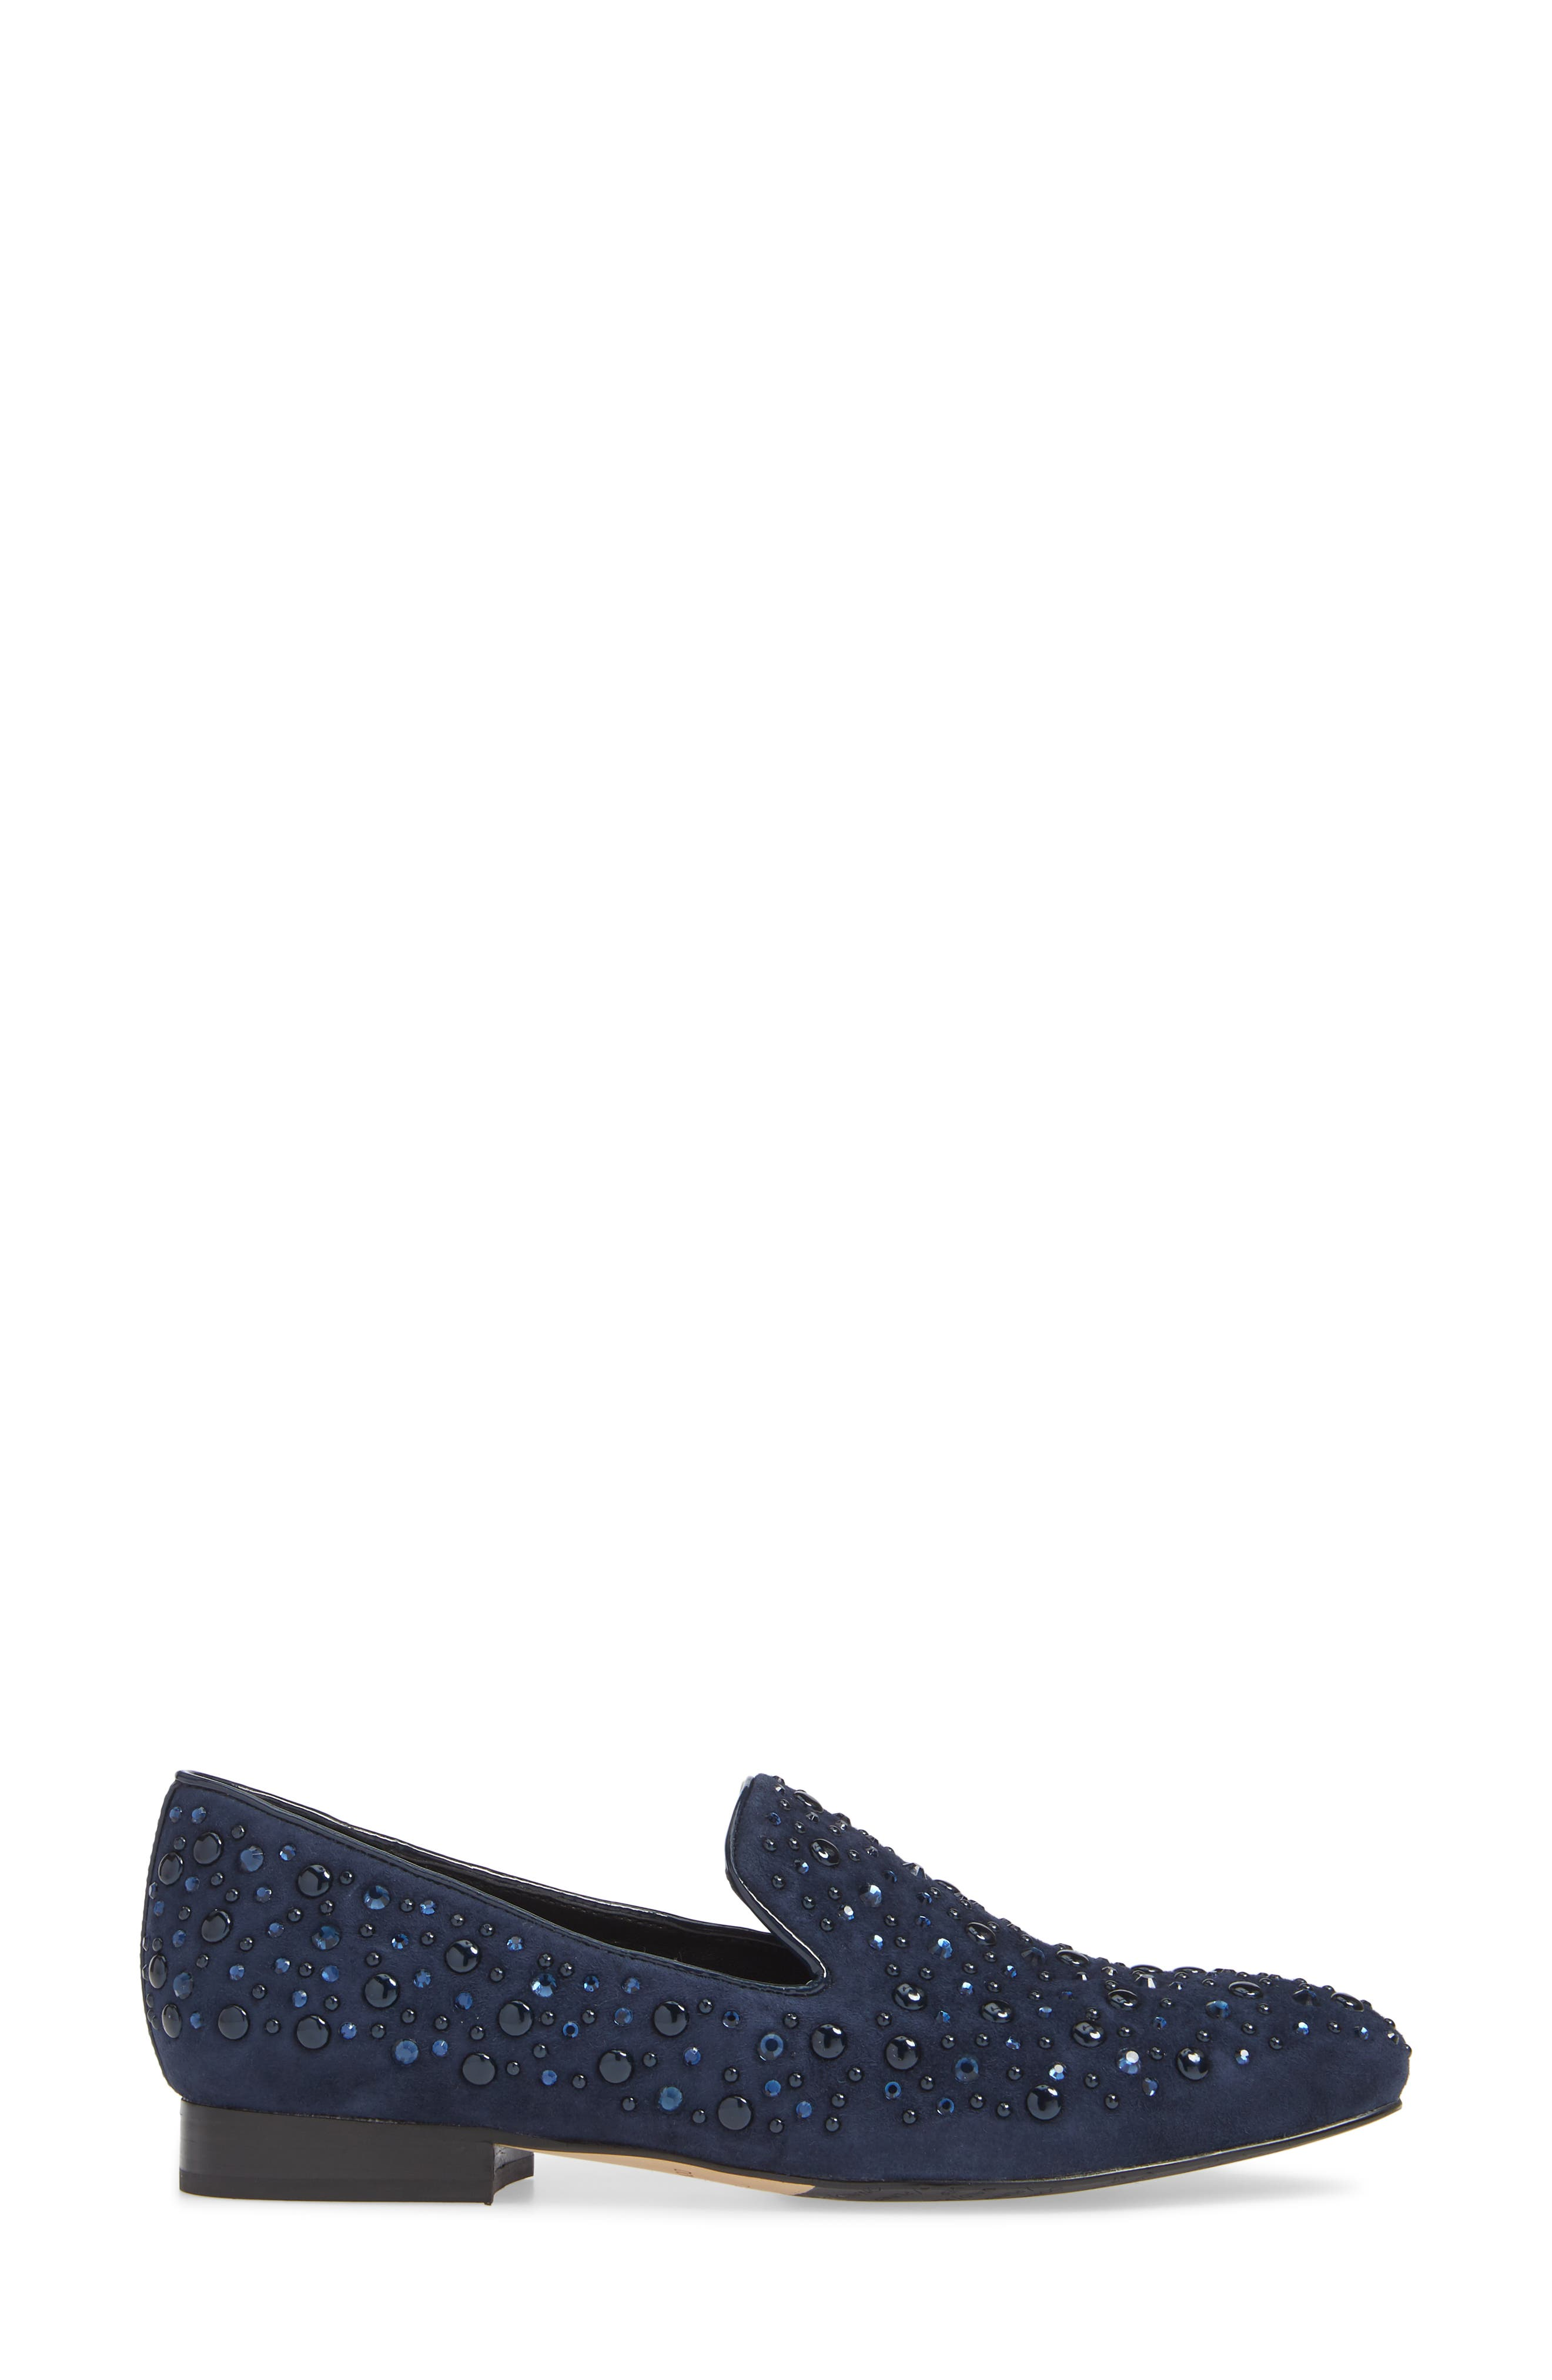 Lynn Loafer Flat,                             Alternate thumbnail 3, color,                             NAVY SUEDE